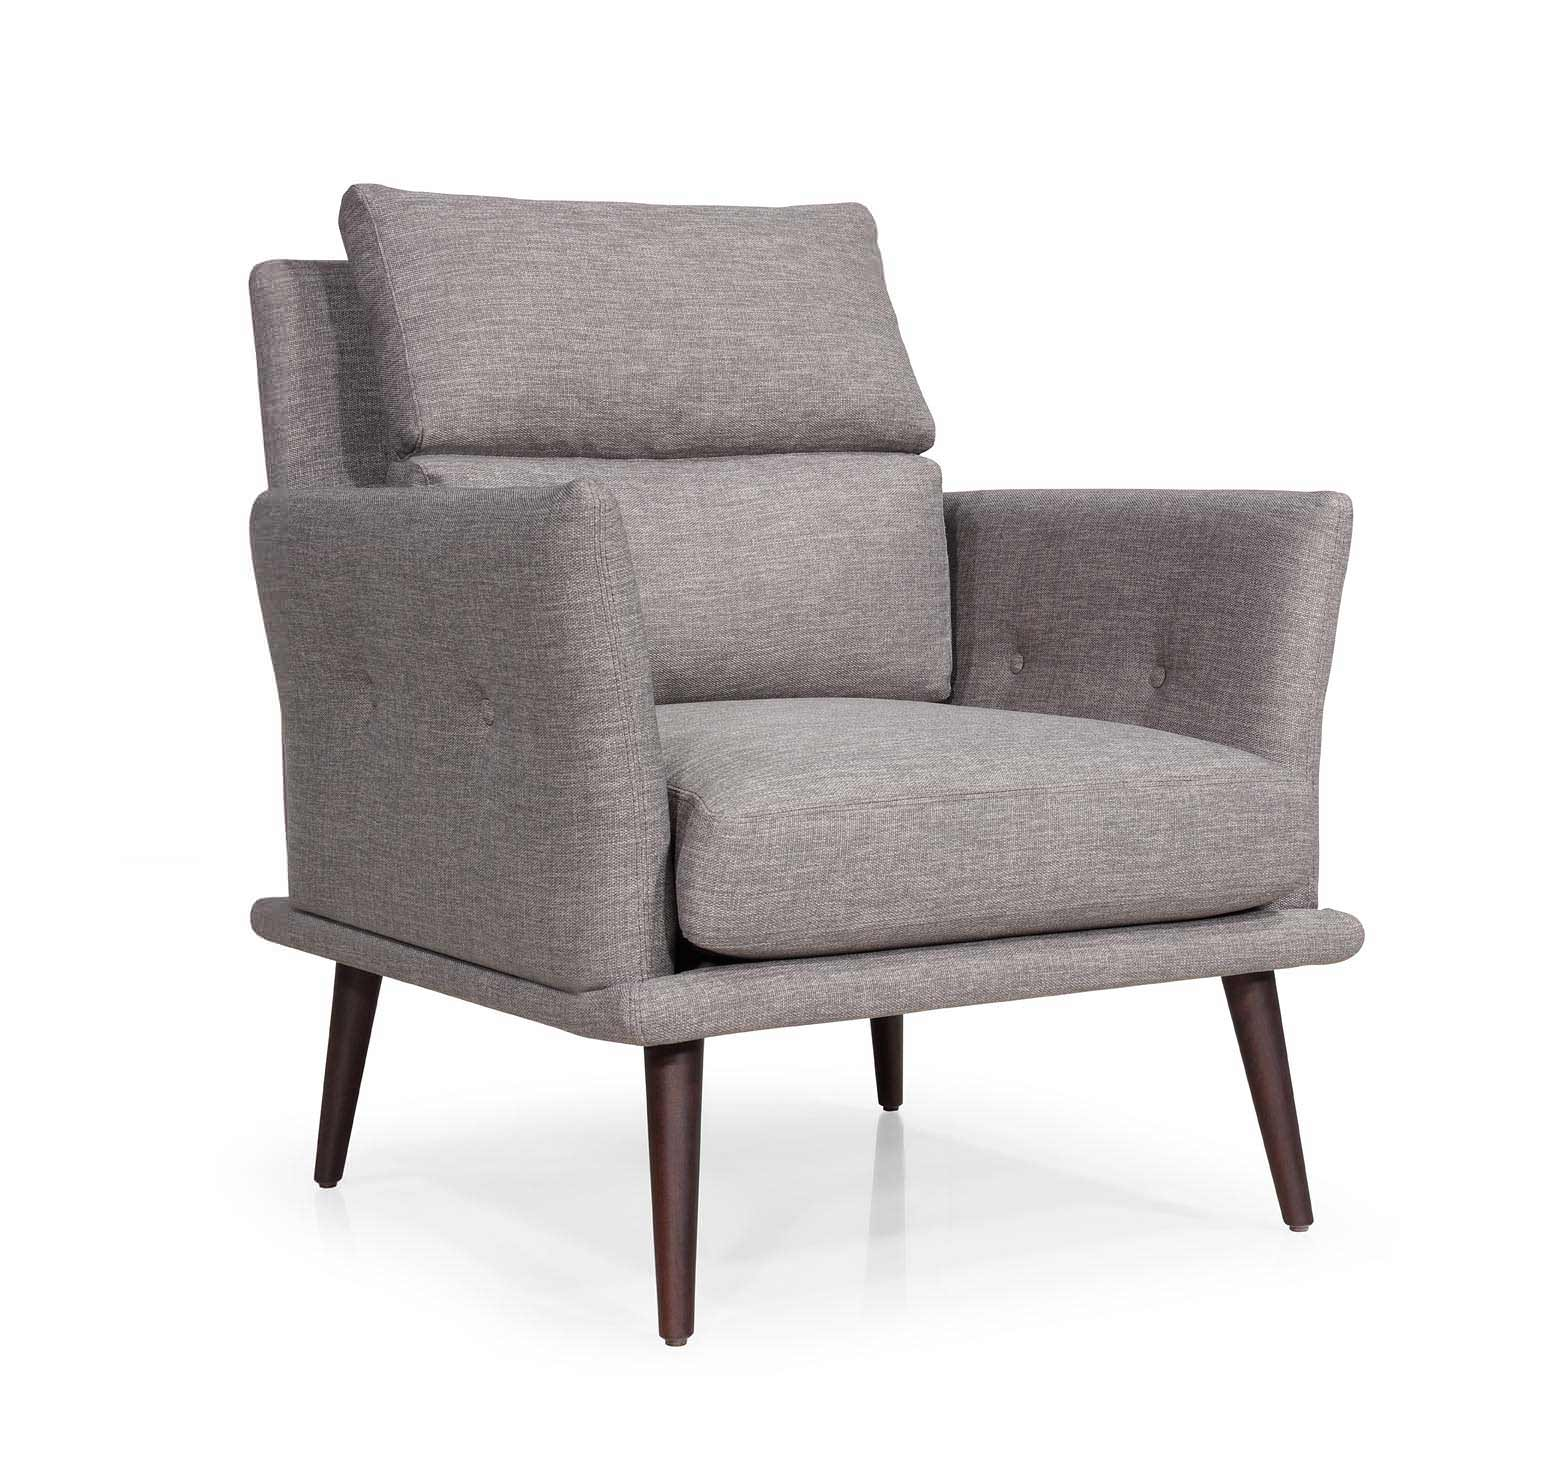 Gaia armchair - Products